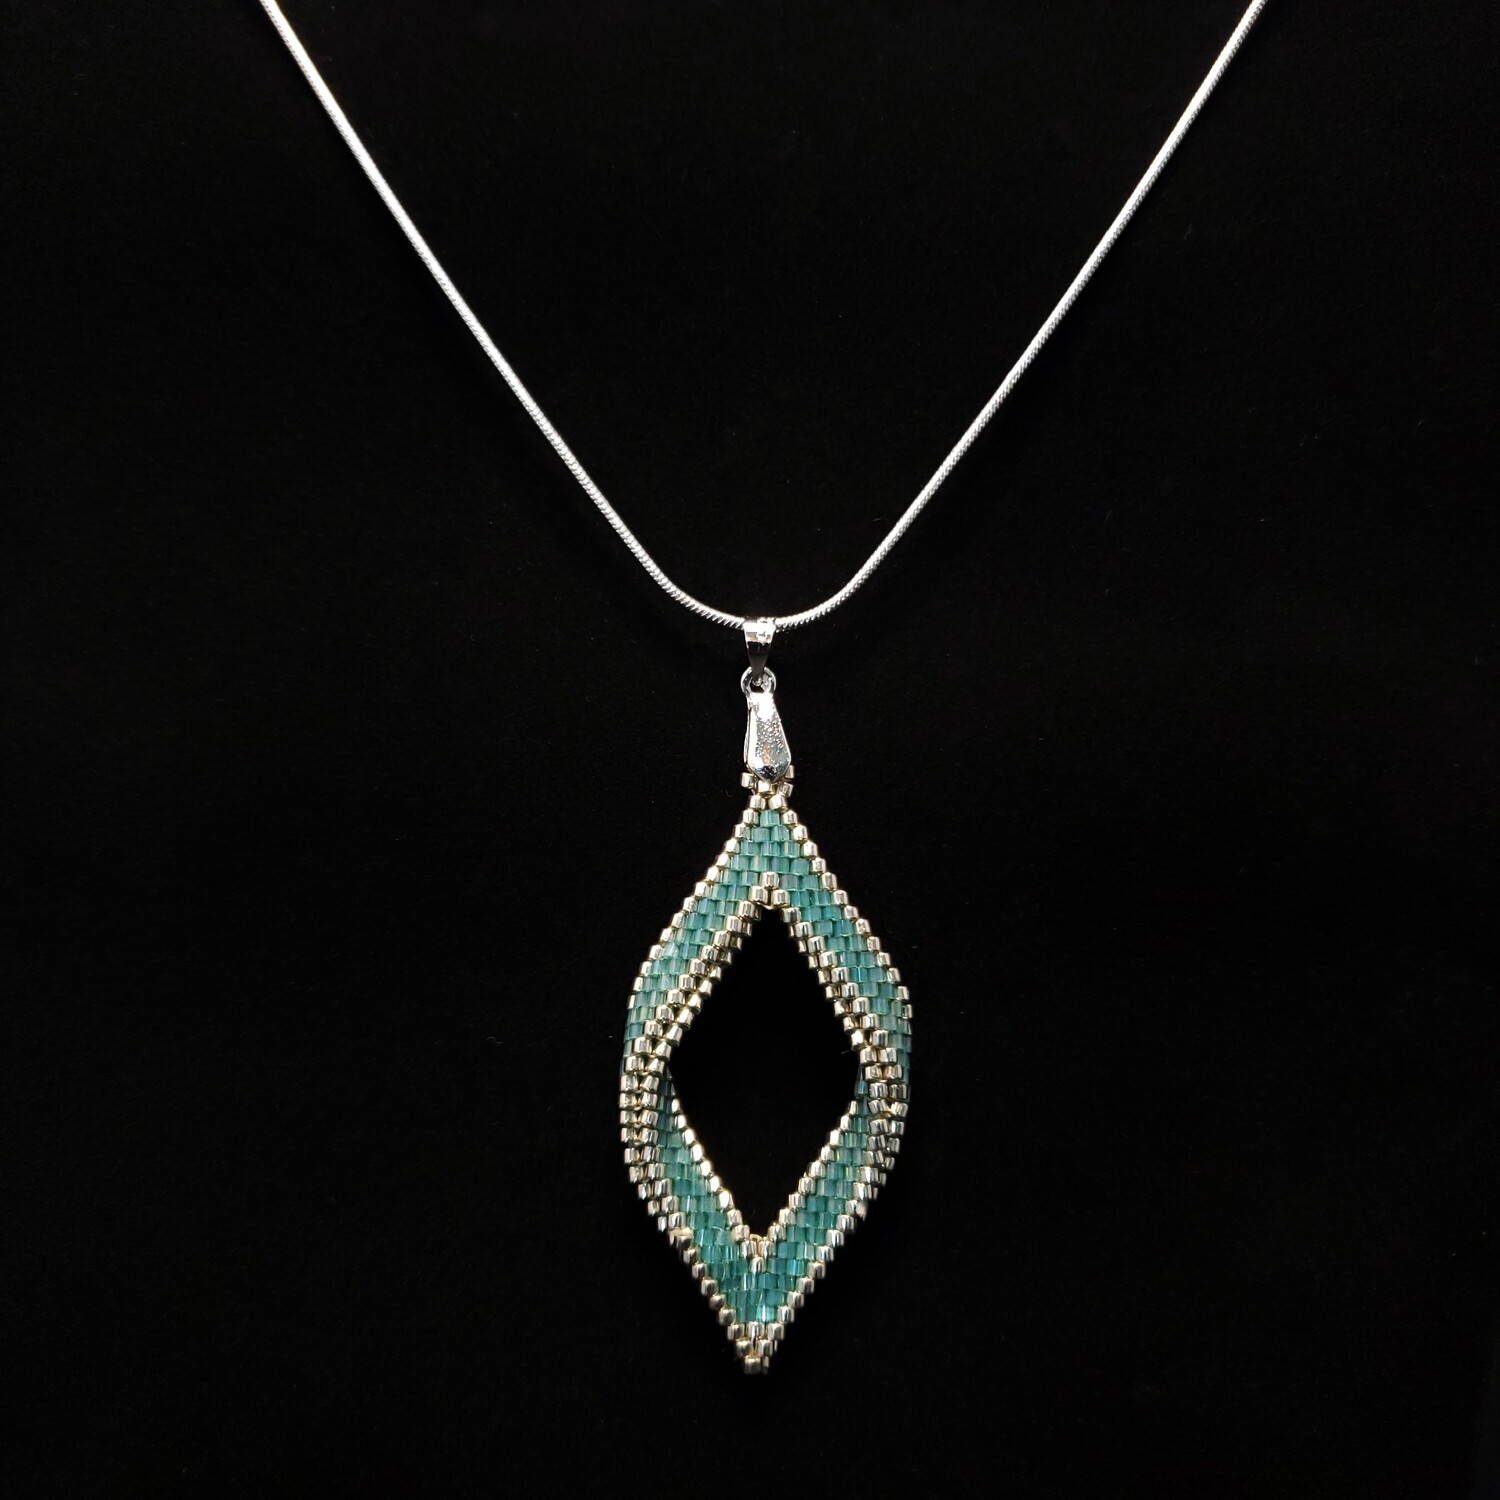 Beaded Open Diamond pendant with Sterling Silver chain